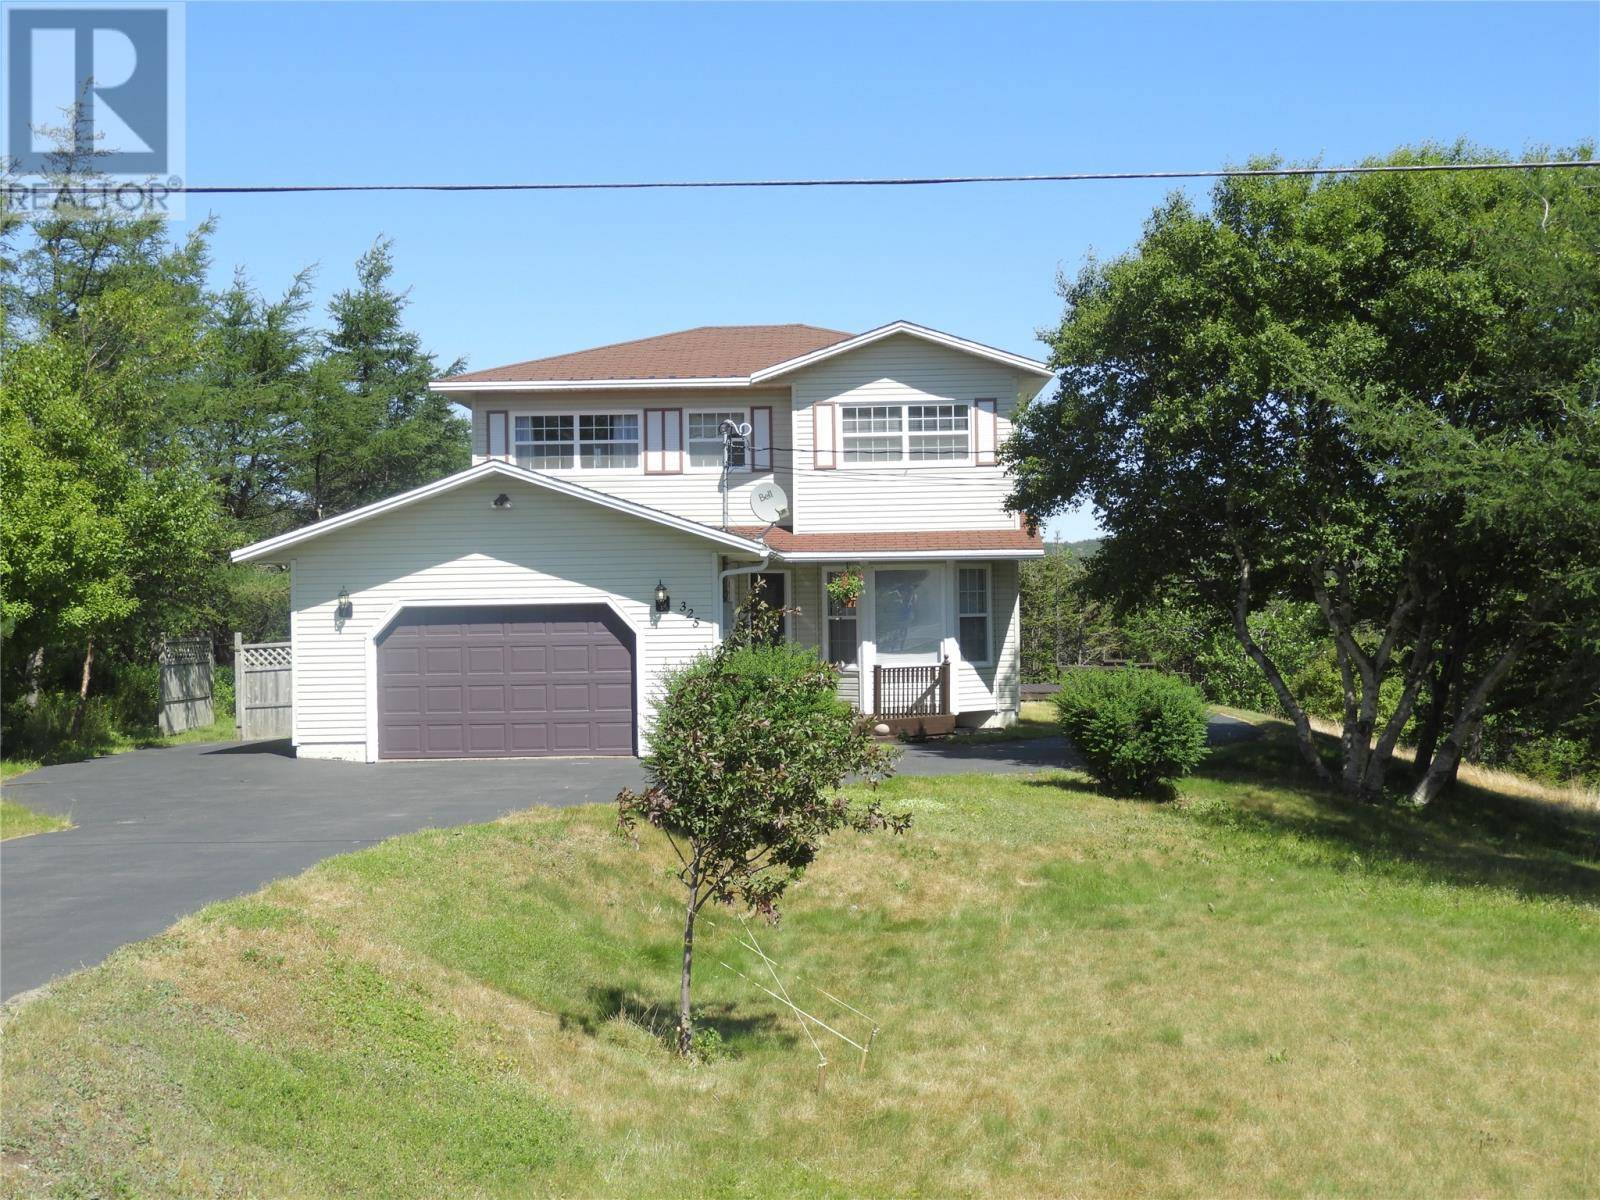 House for sale at 325 Main Rd Lewins Cove Newfoundland - MLS: 1187870